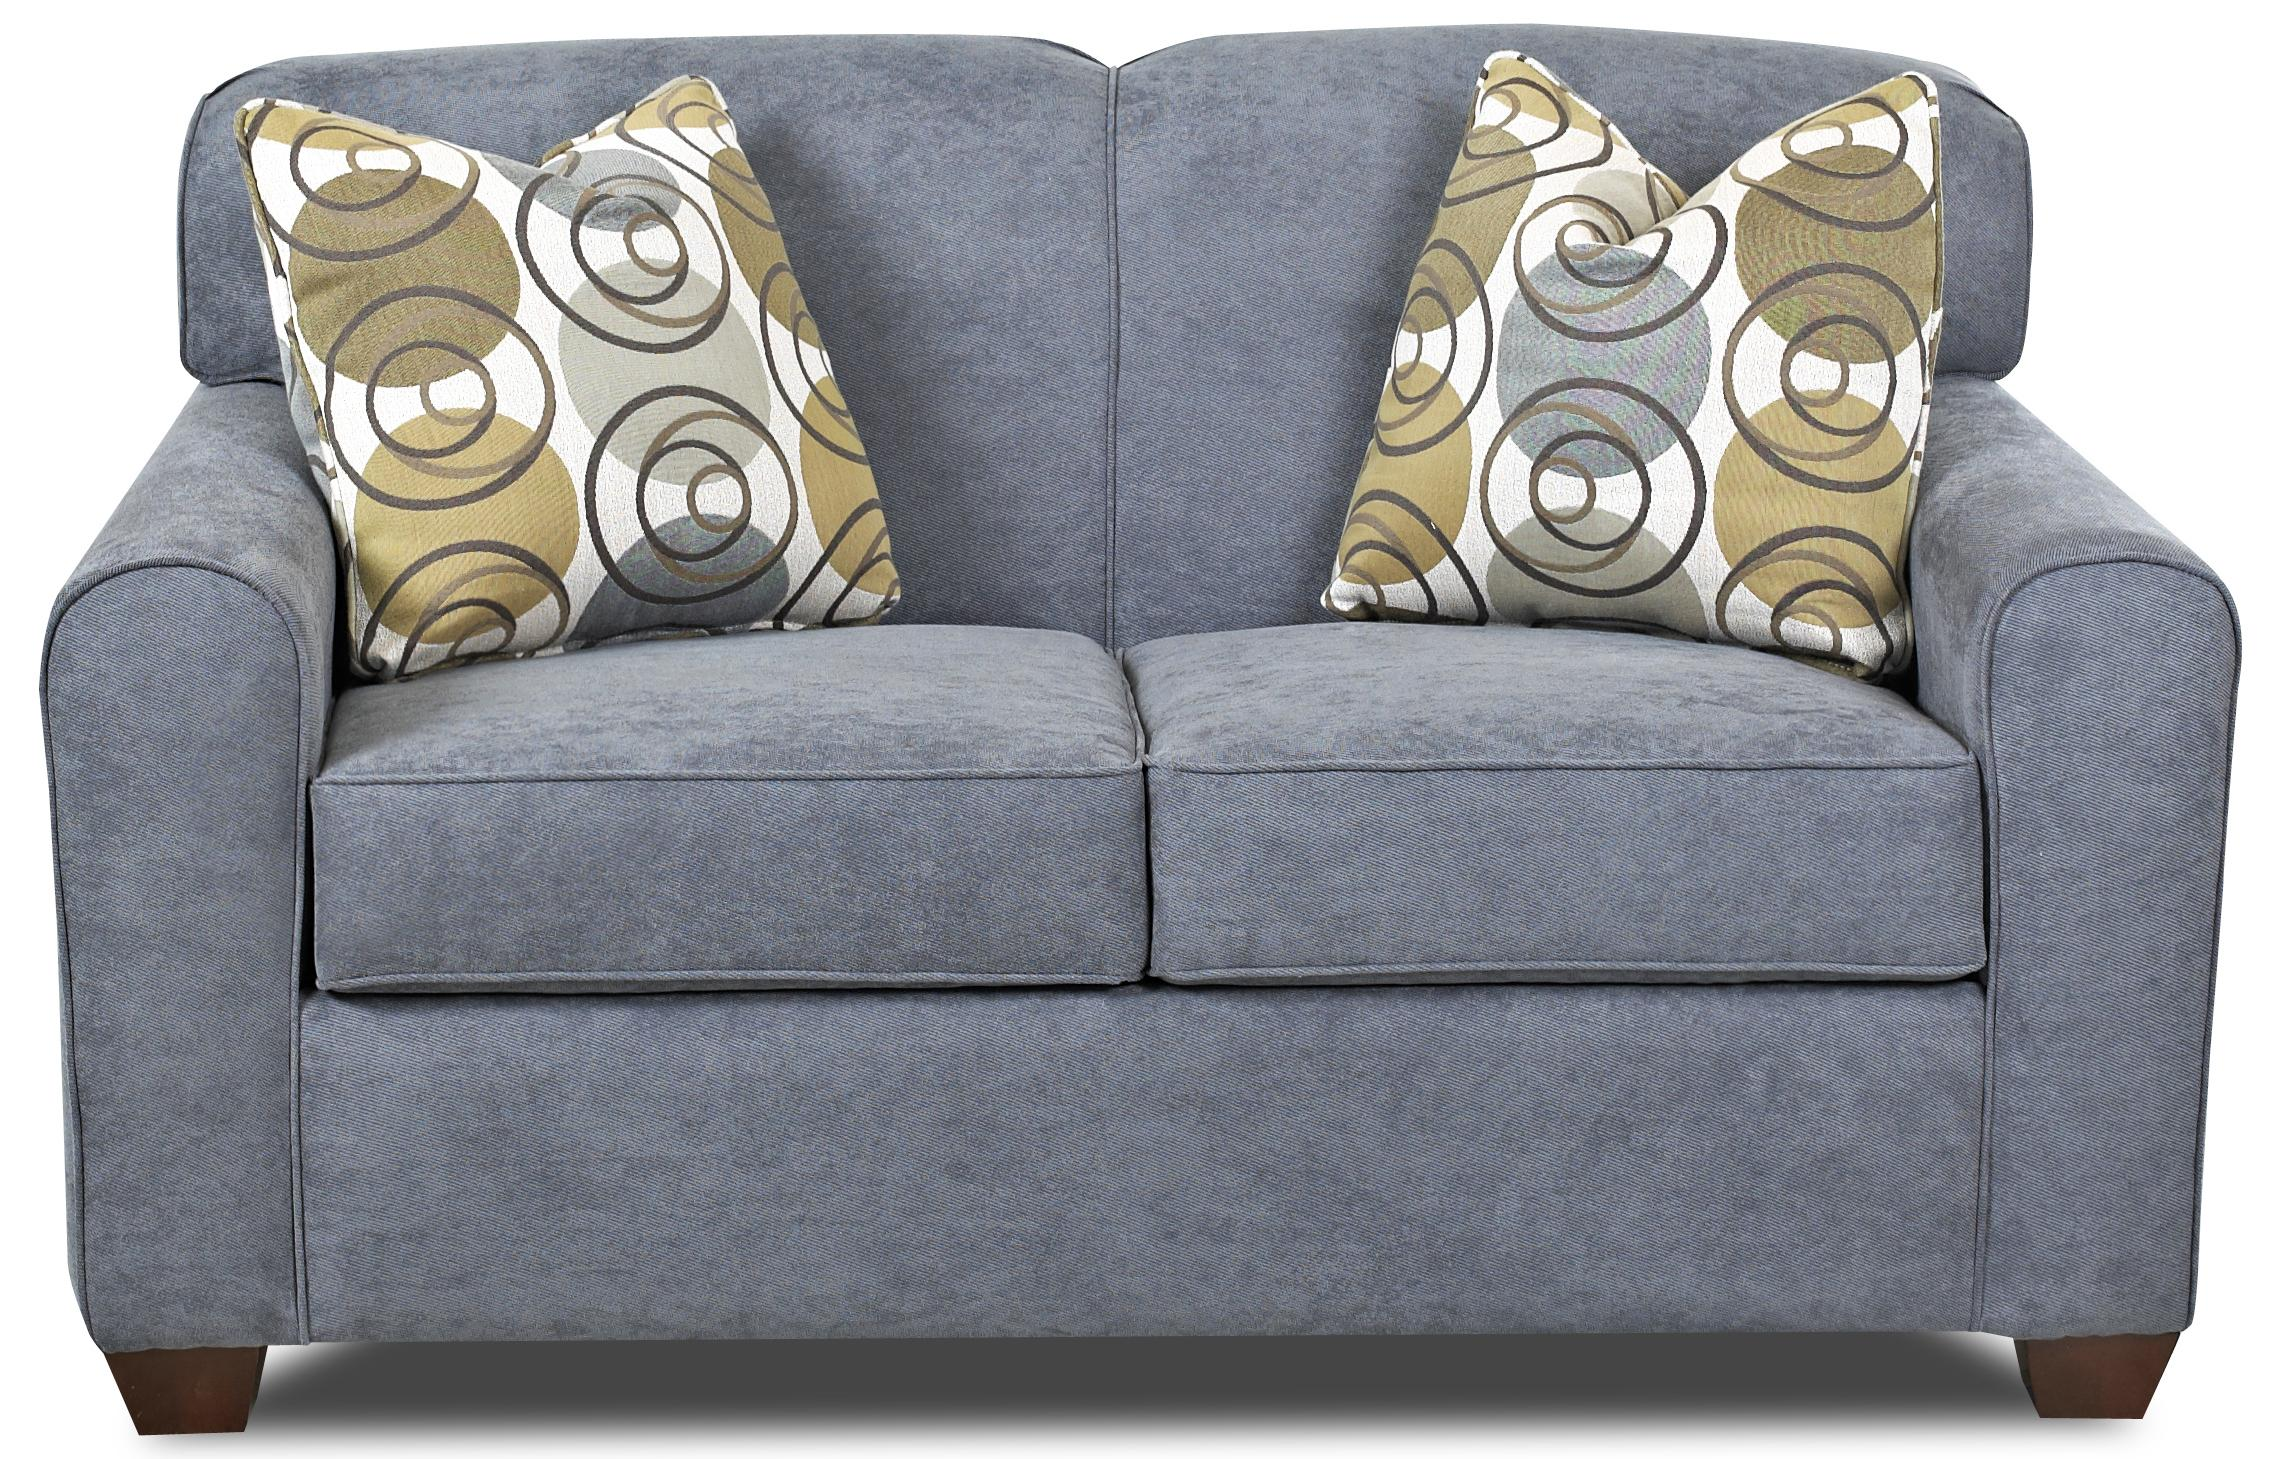 Zuma  Loveseat by Klaussner at Northeast Factory Direct